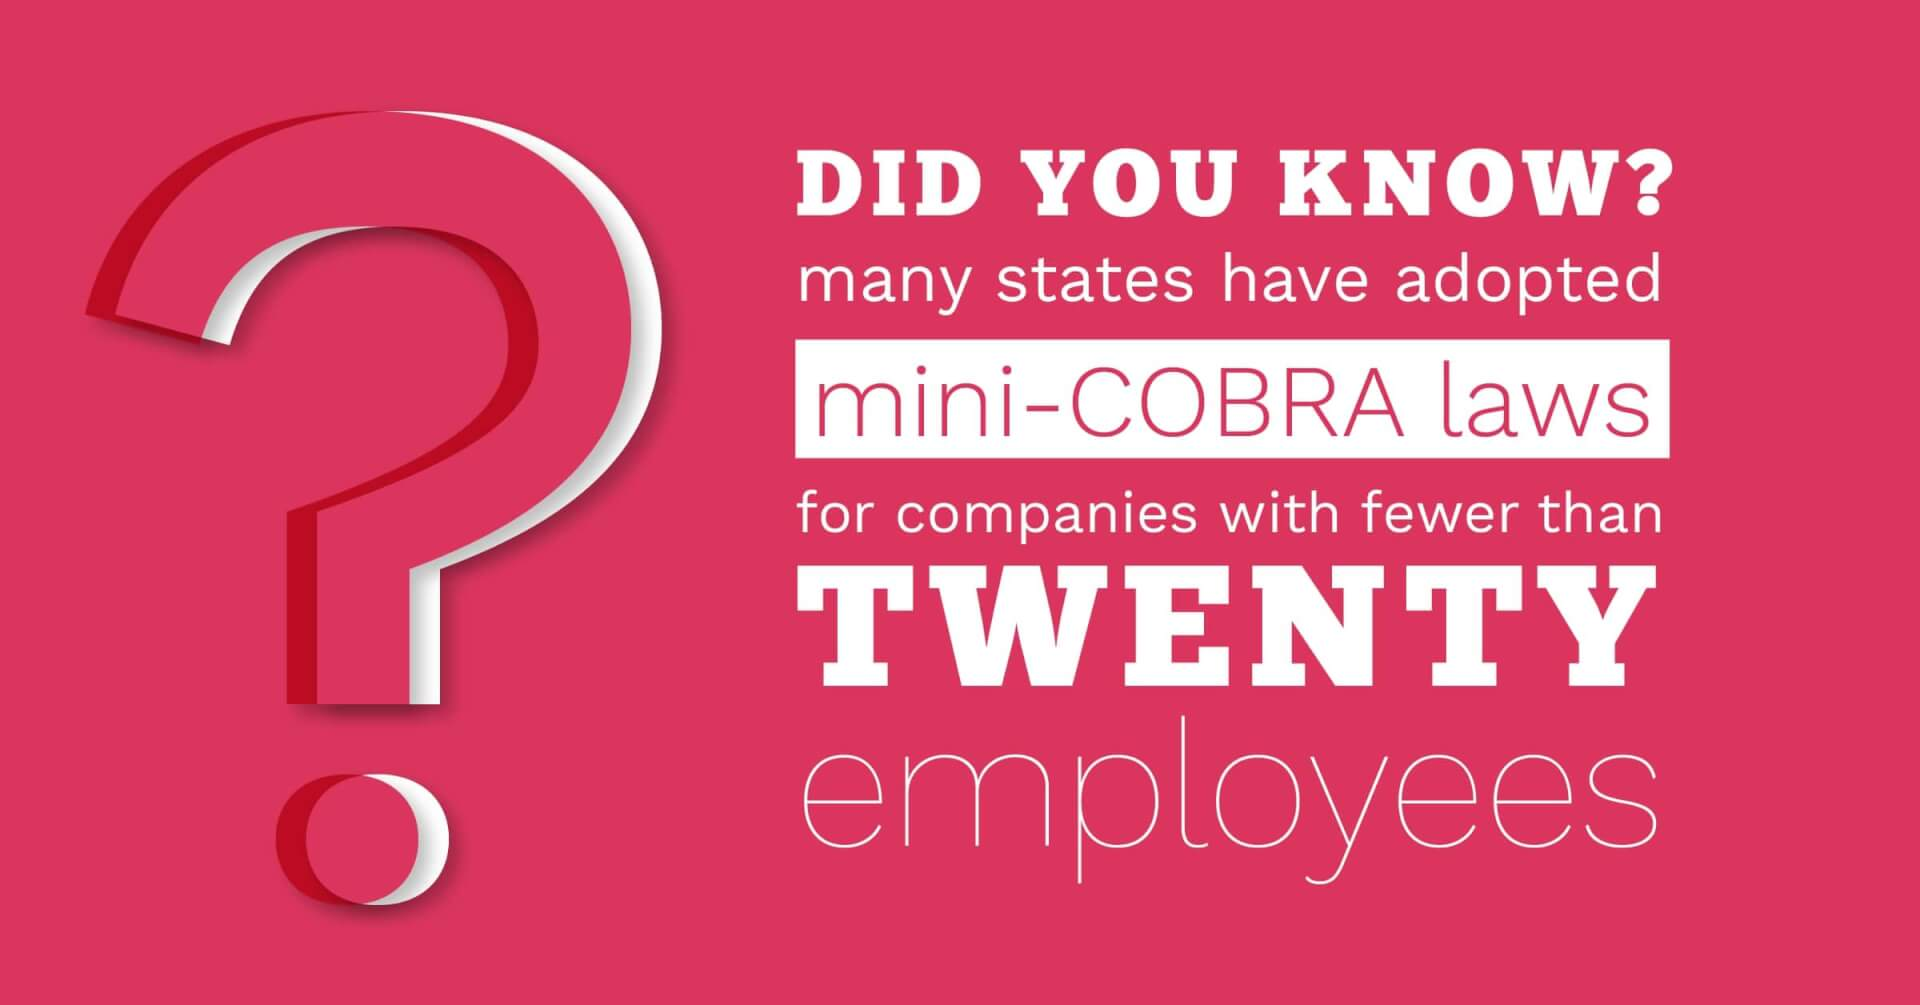 Social Benefits - Did You KNow Many States Have Adopted Mini-COBRA Laws